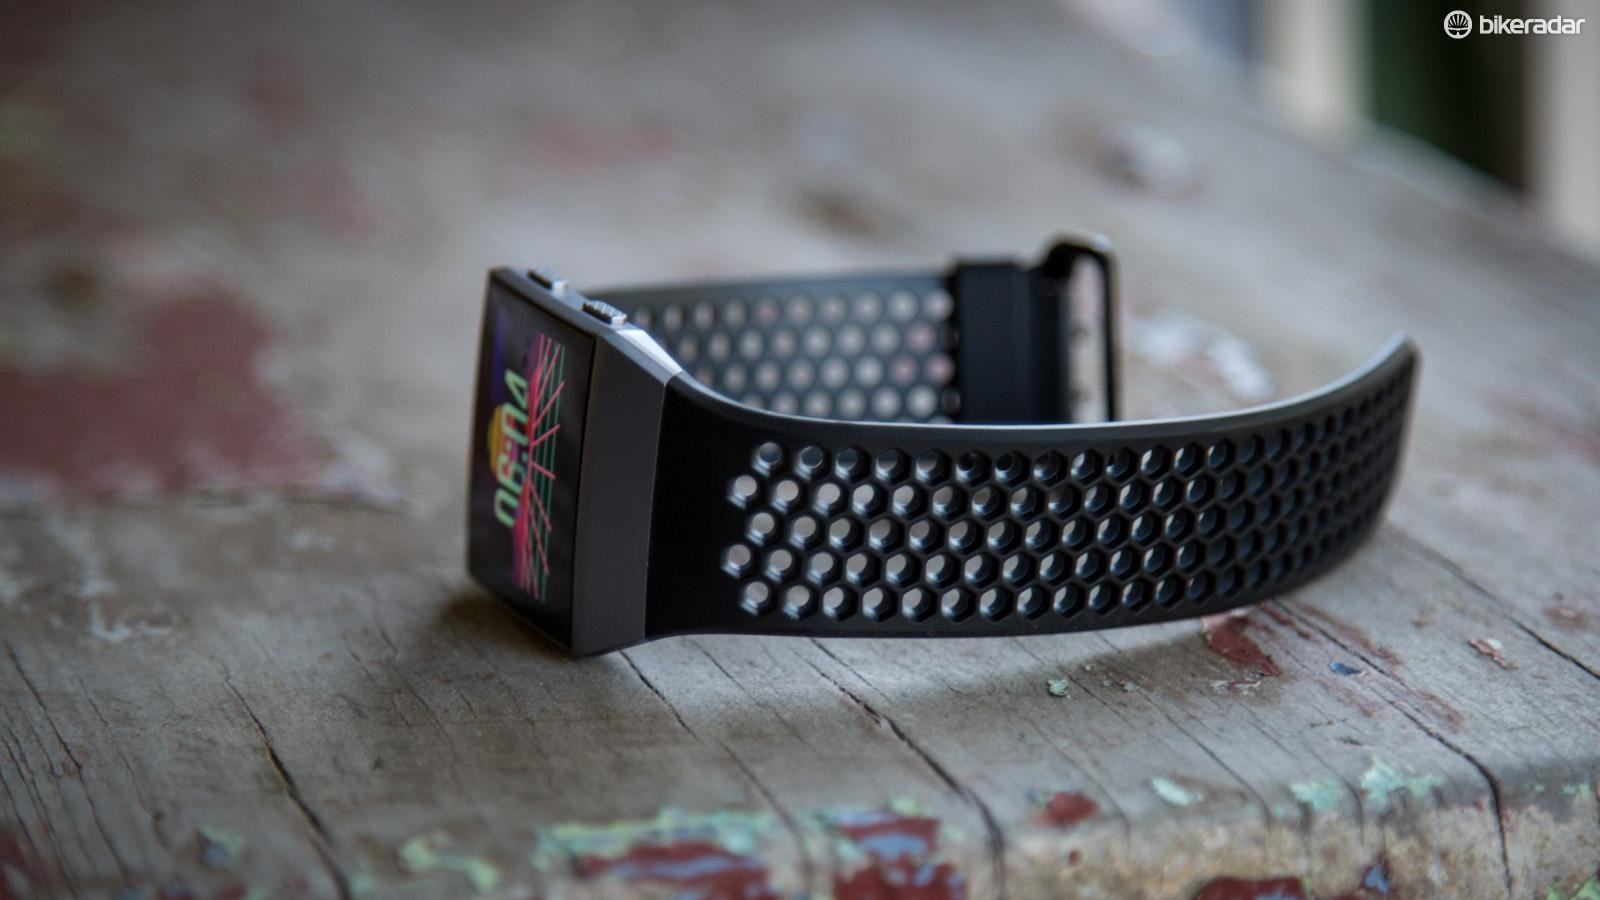 The sport band is a massive improvement over the standard band